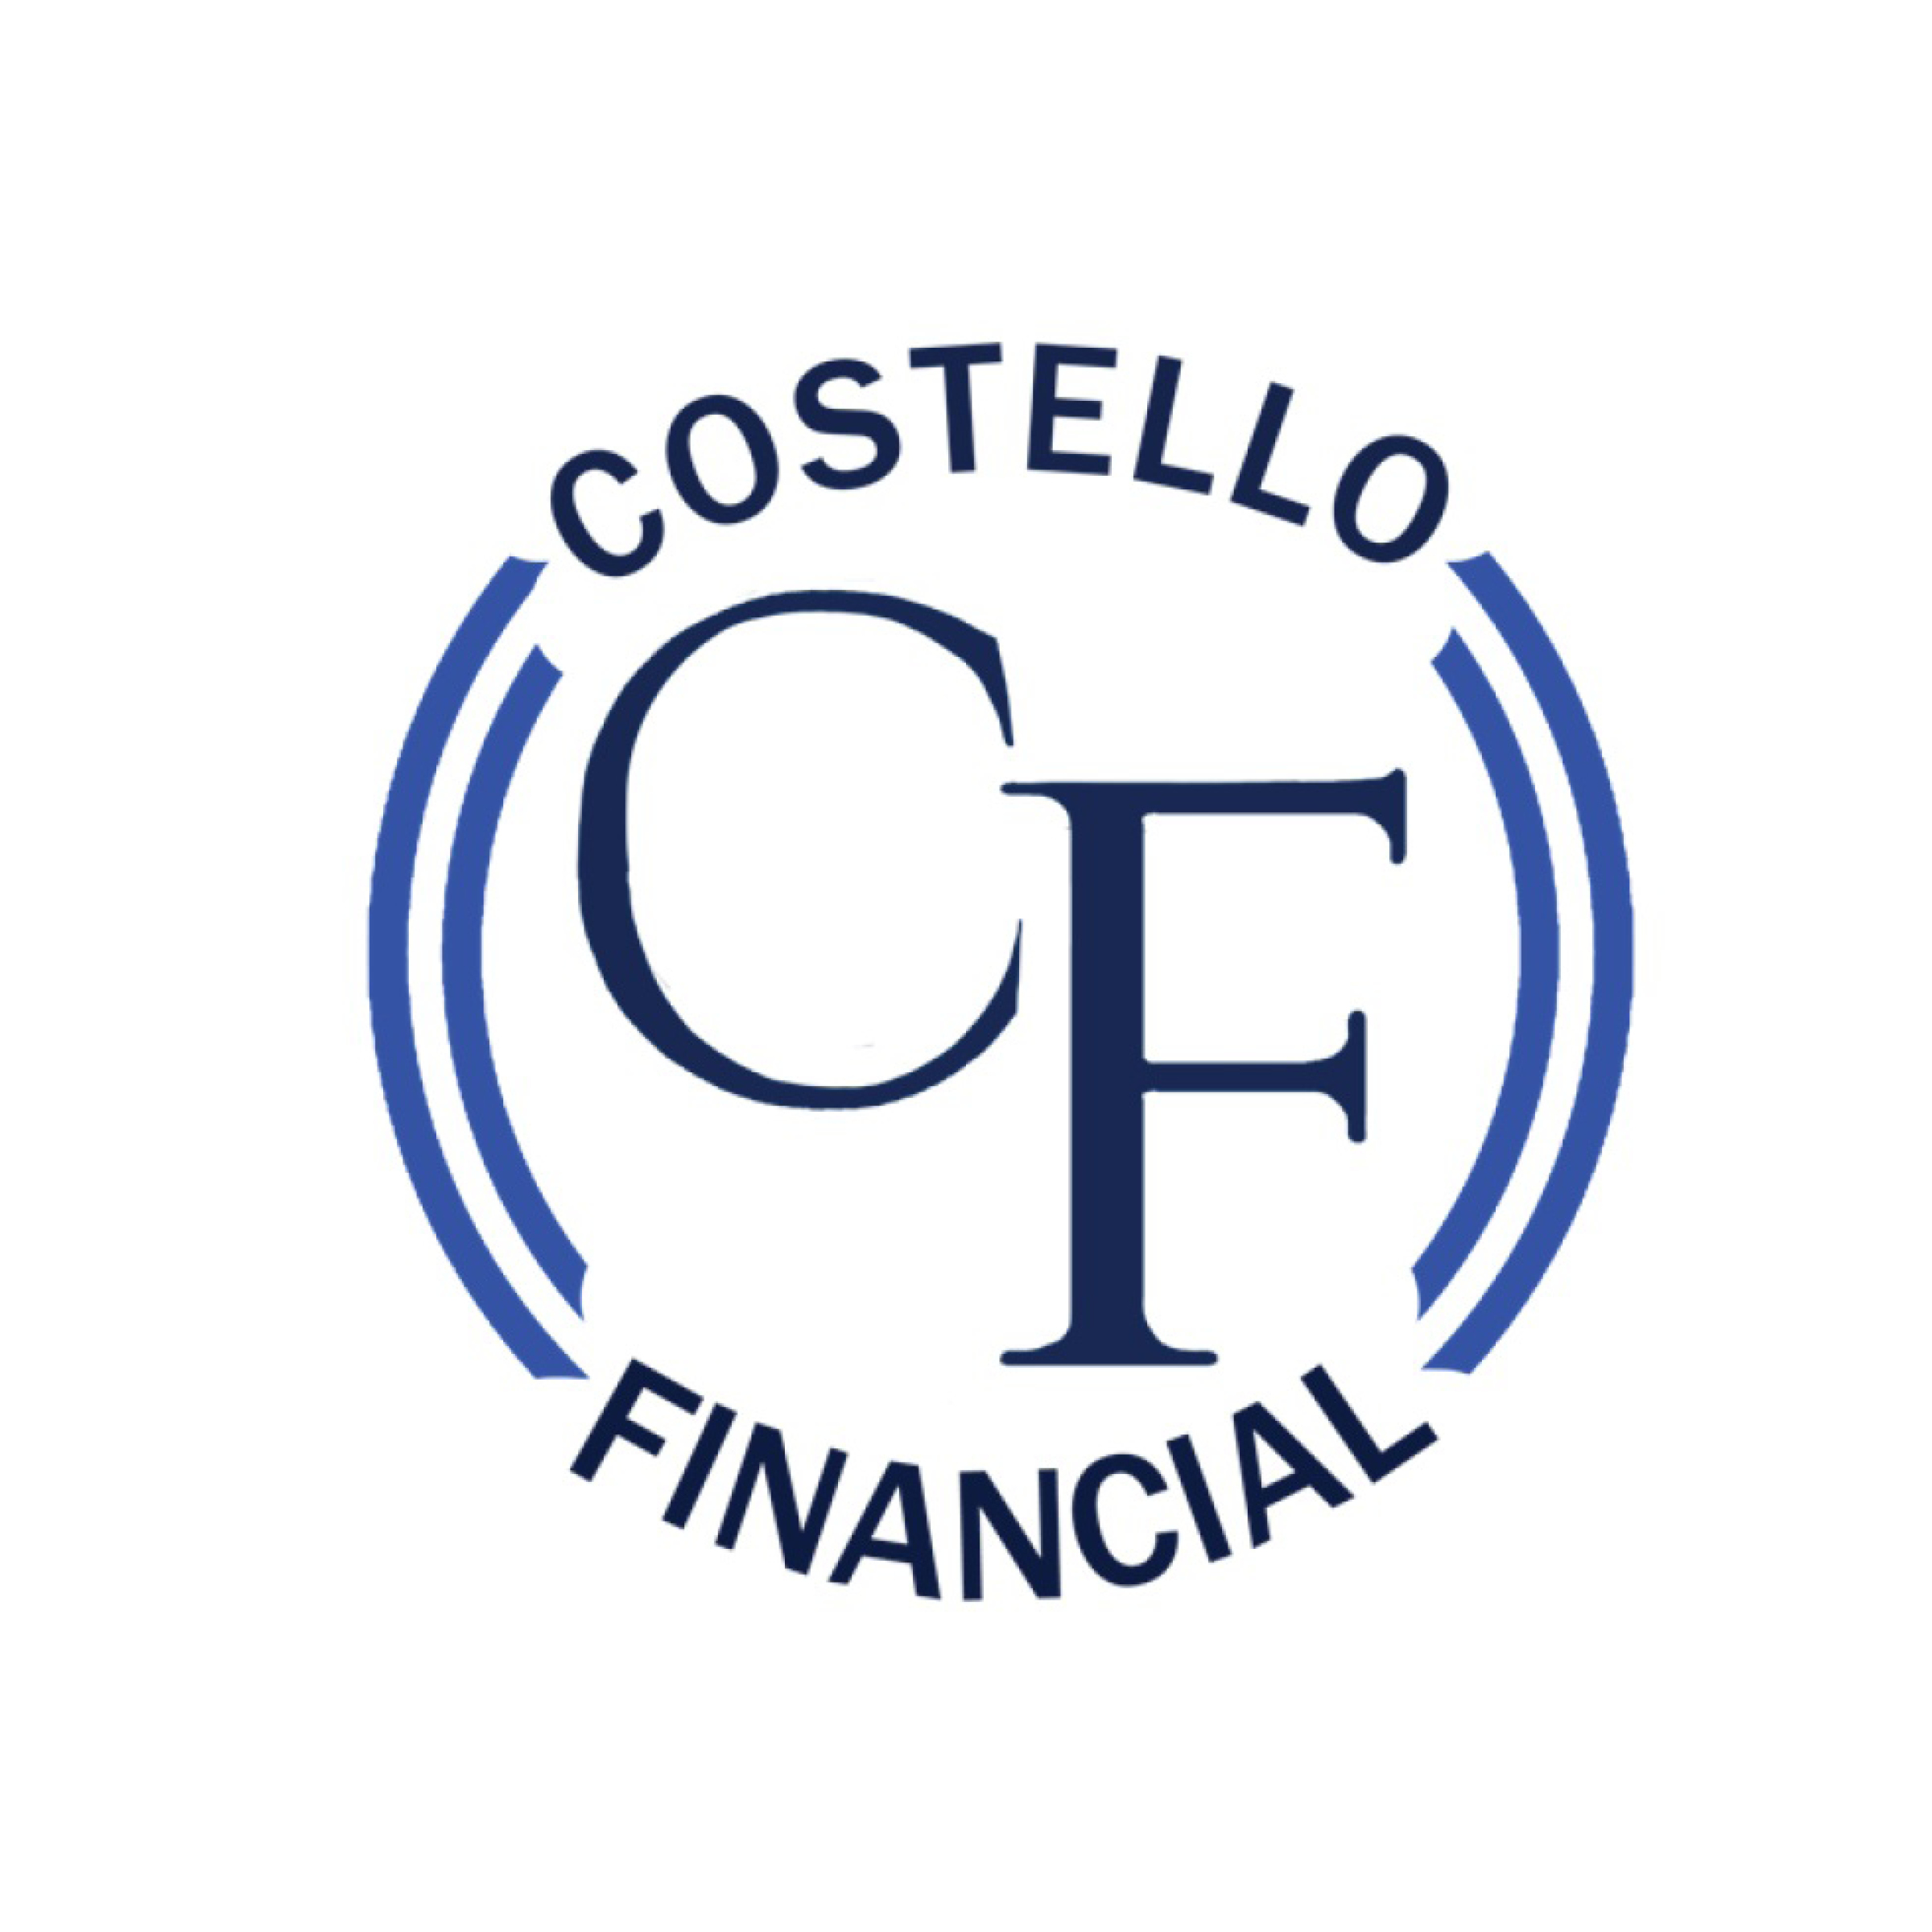 Costello Financial